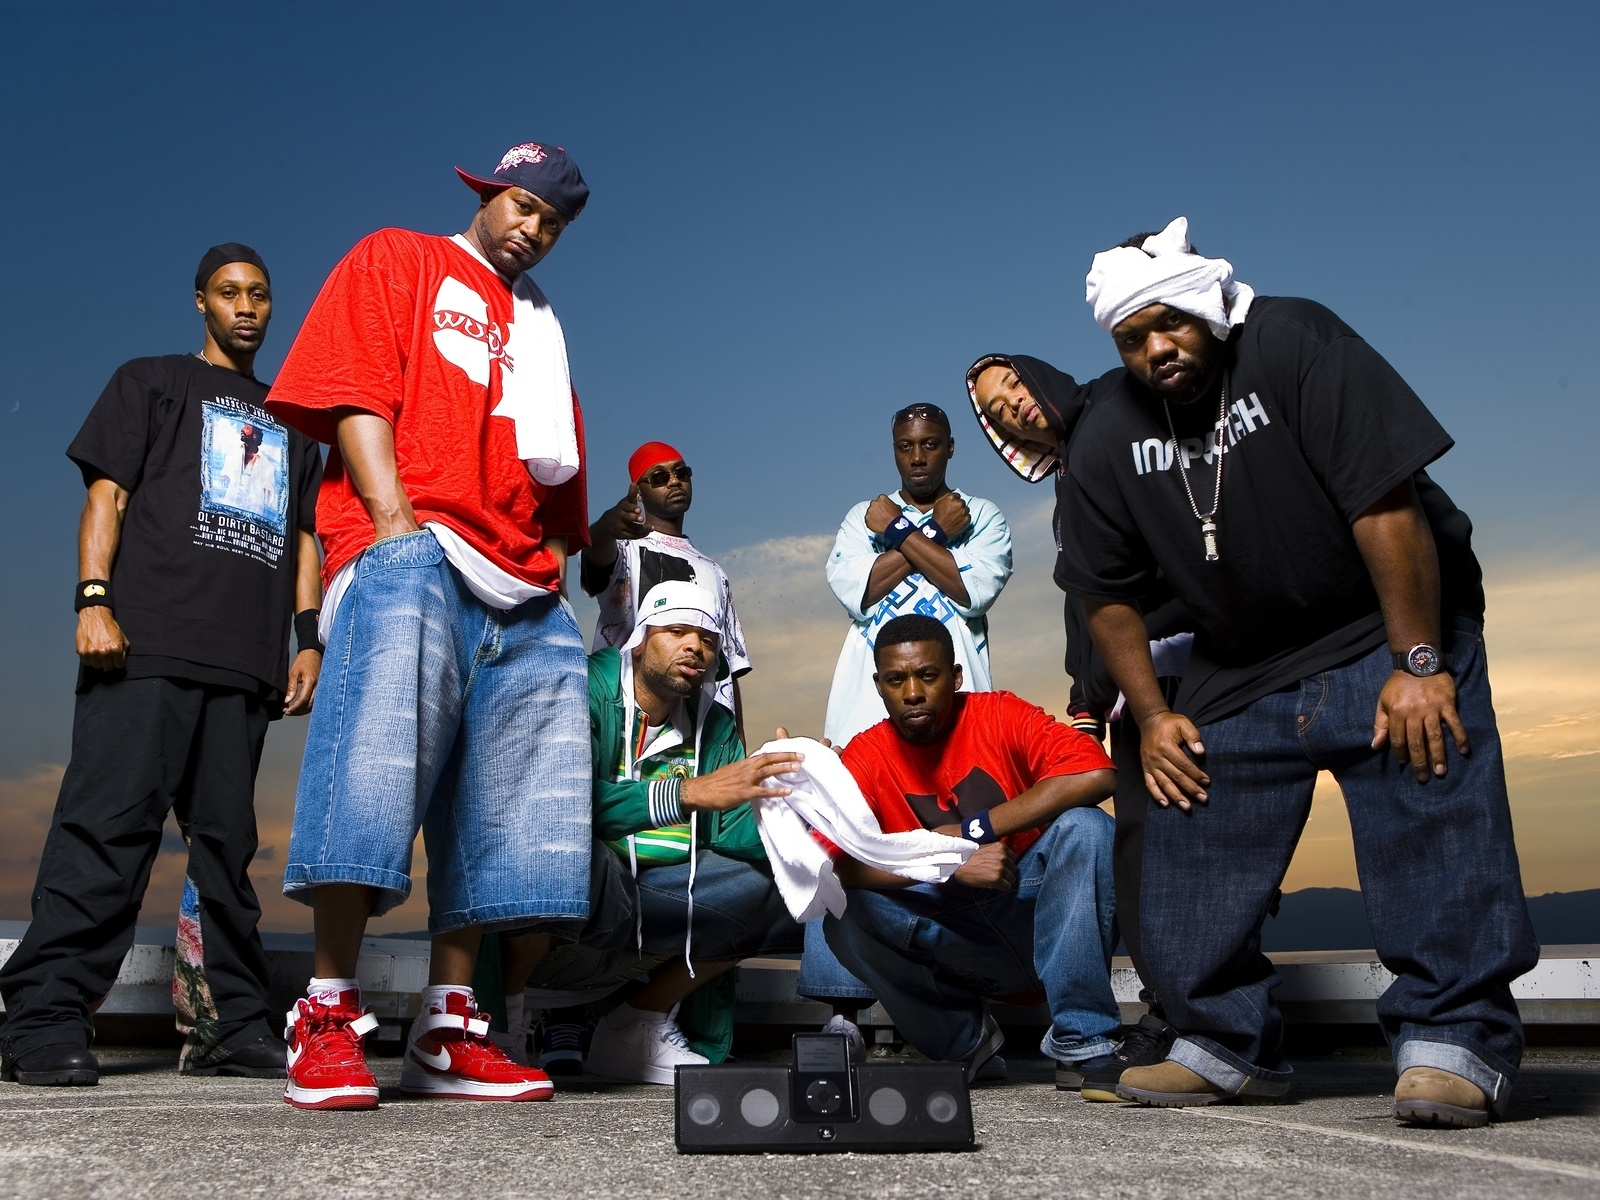 RZA says Wu-Tang Clan's <em>A Better Tomorrow</em> might not be released without Raekwon